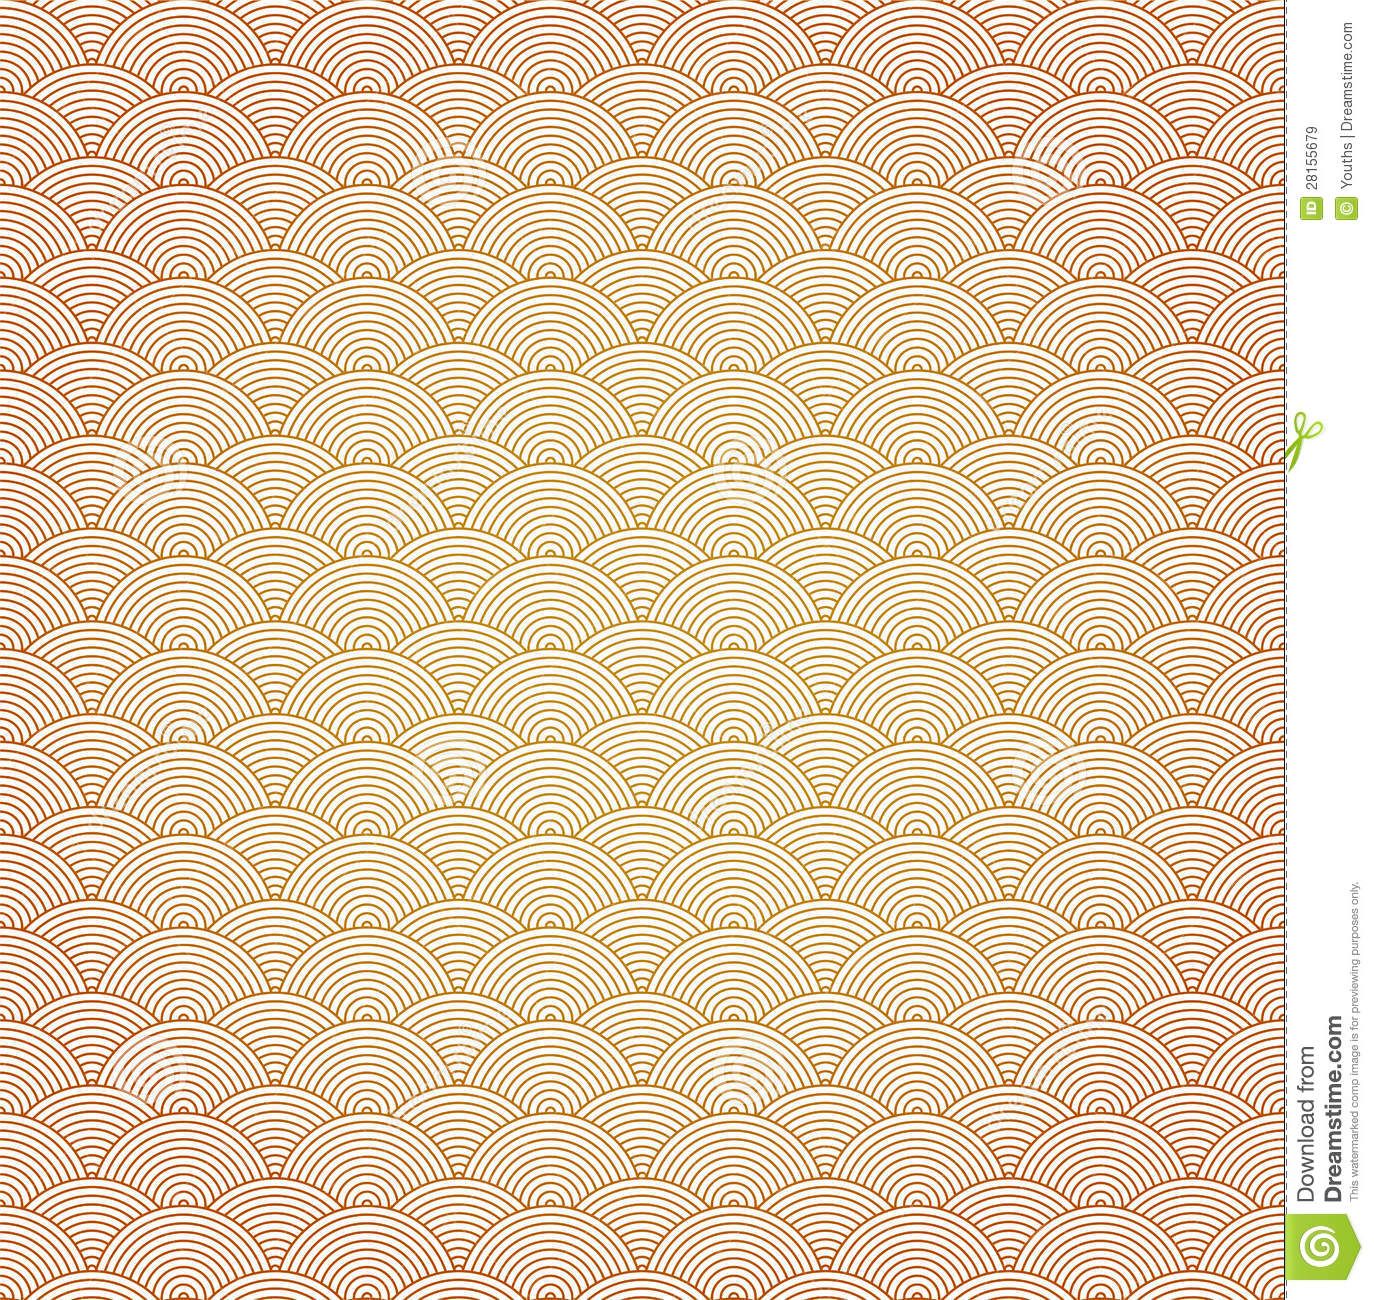 oriental curve wave pattern background royalty free stock piggy bank clipart free Free Clip Art Black and White Piggy Bank